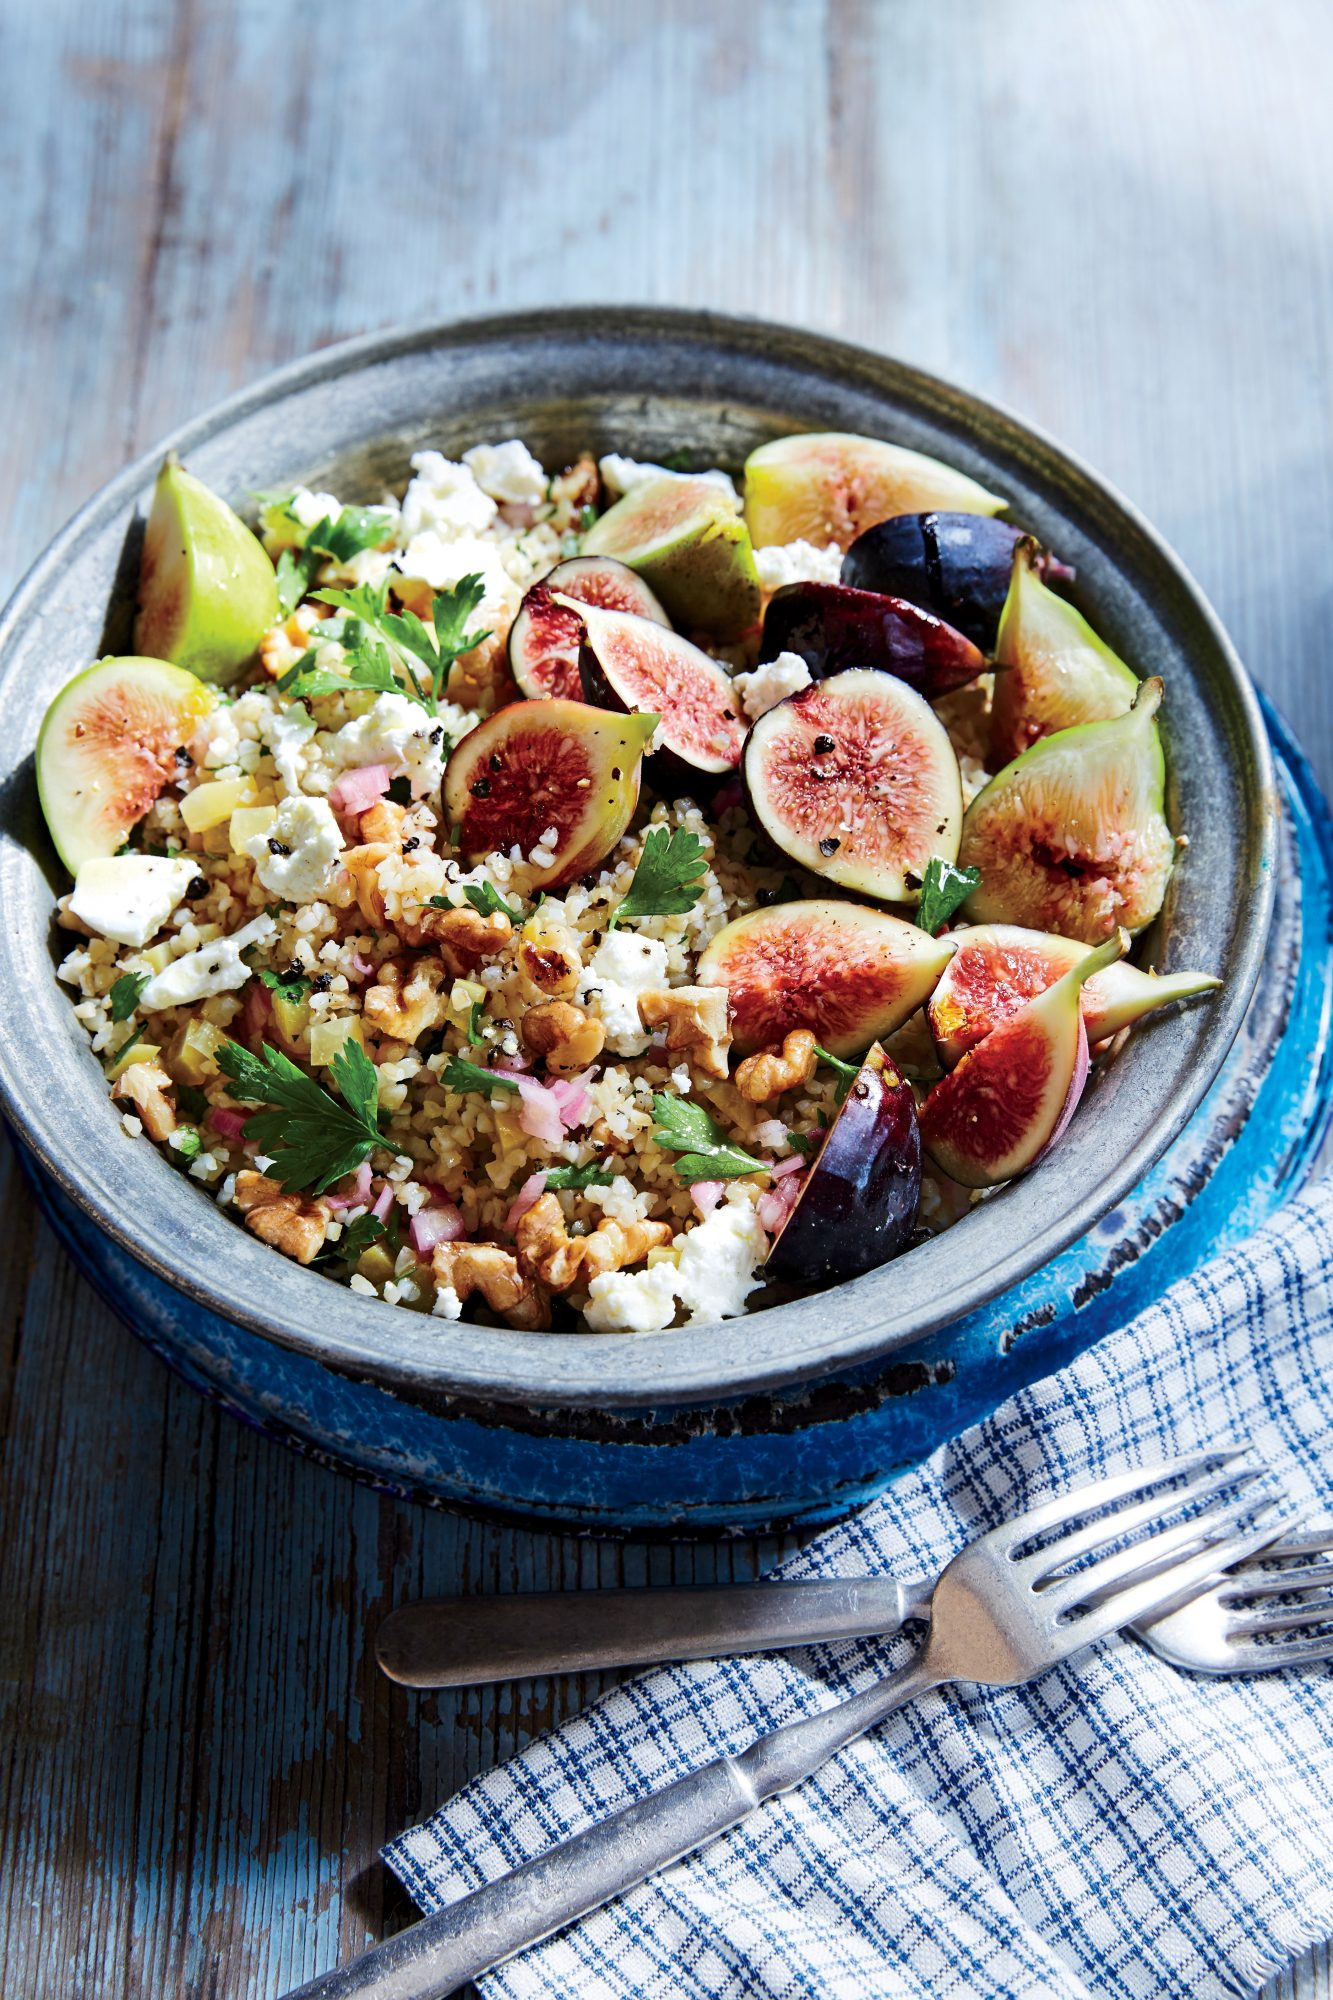 Bulgur Salad with Figs and Preserved Lemon